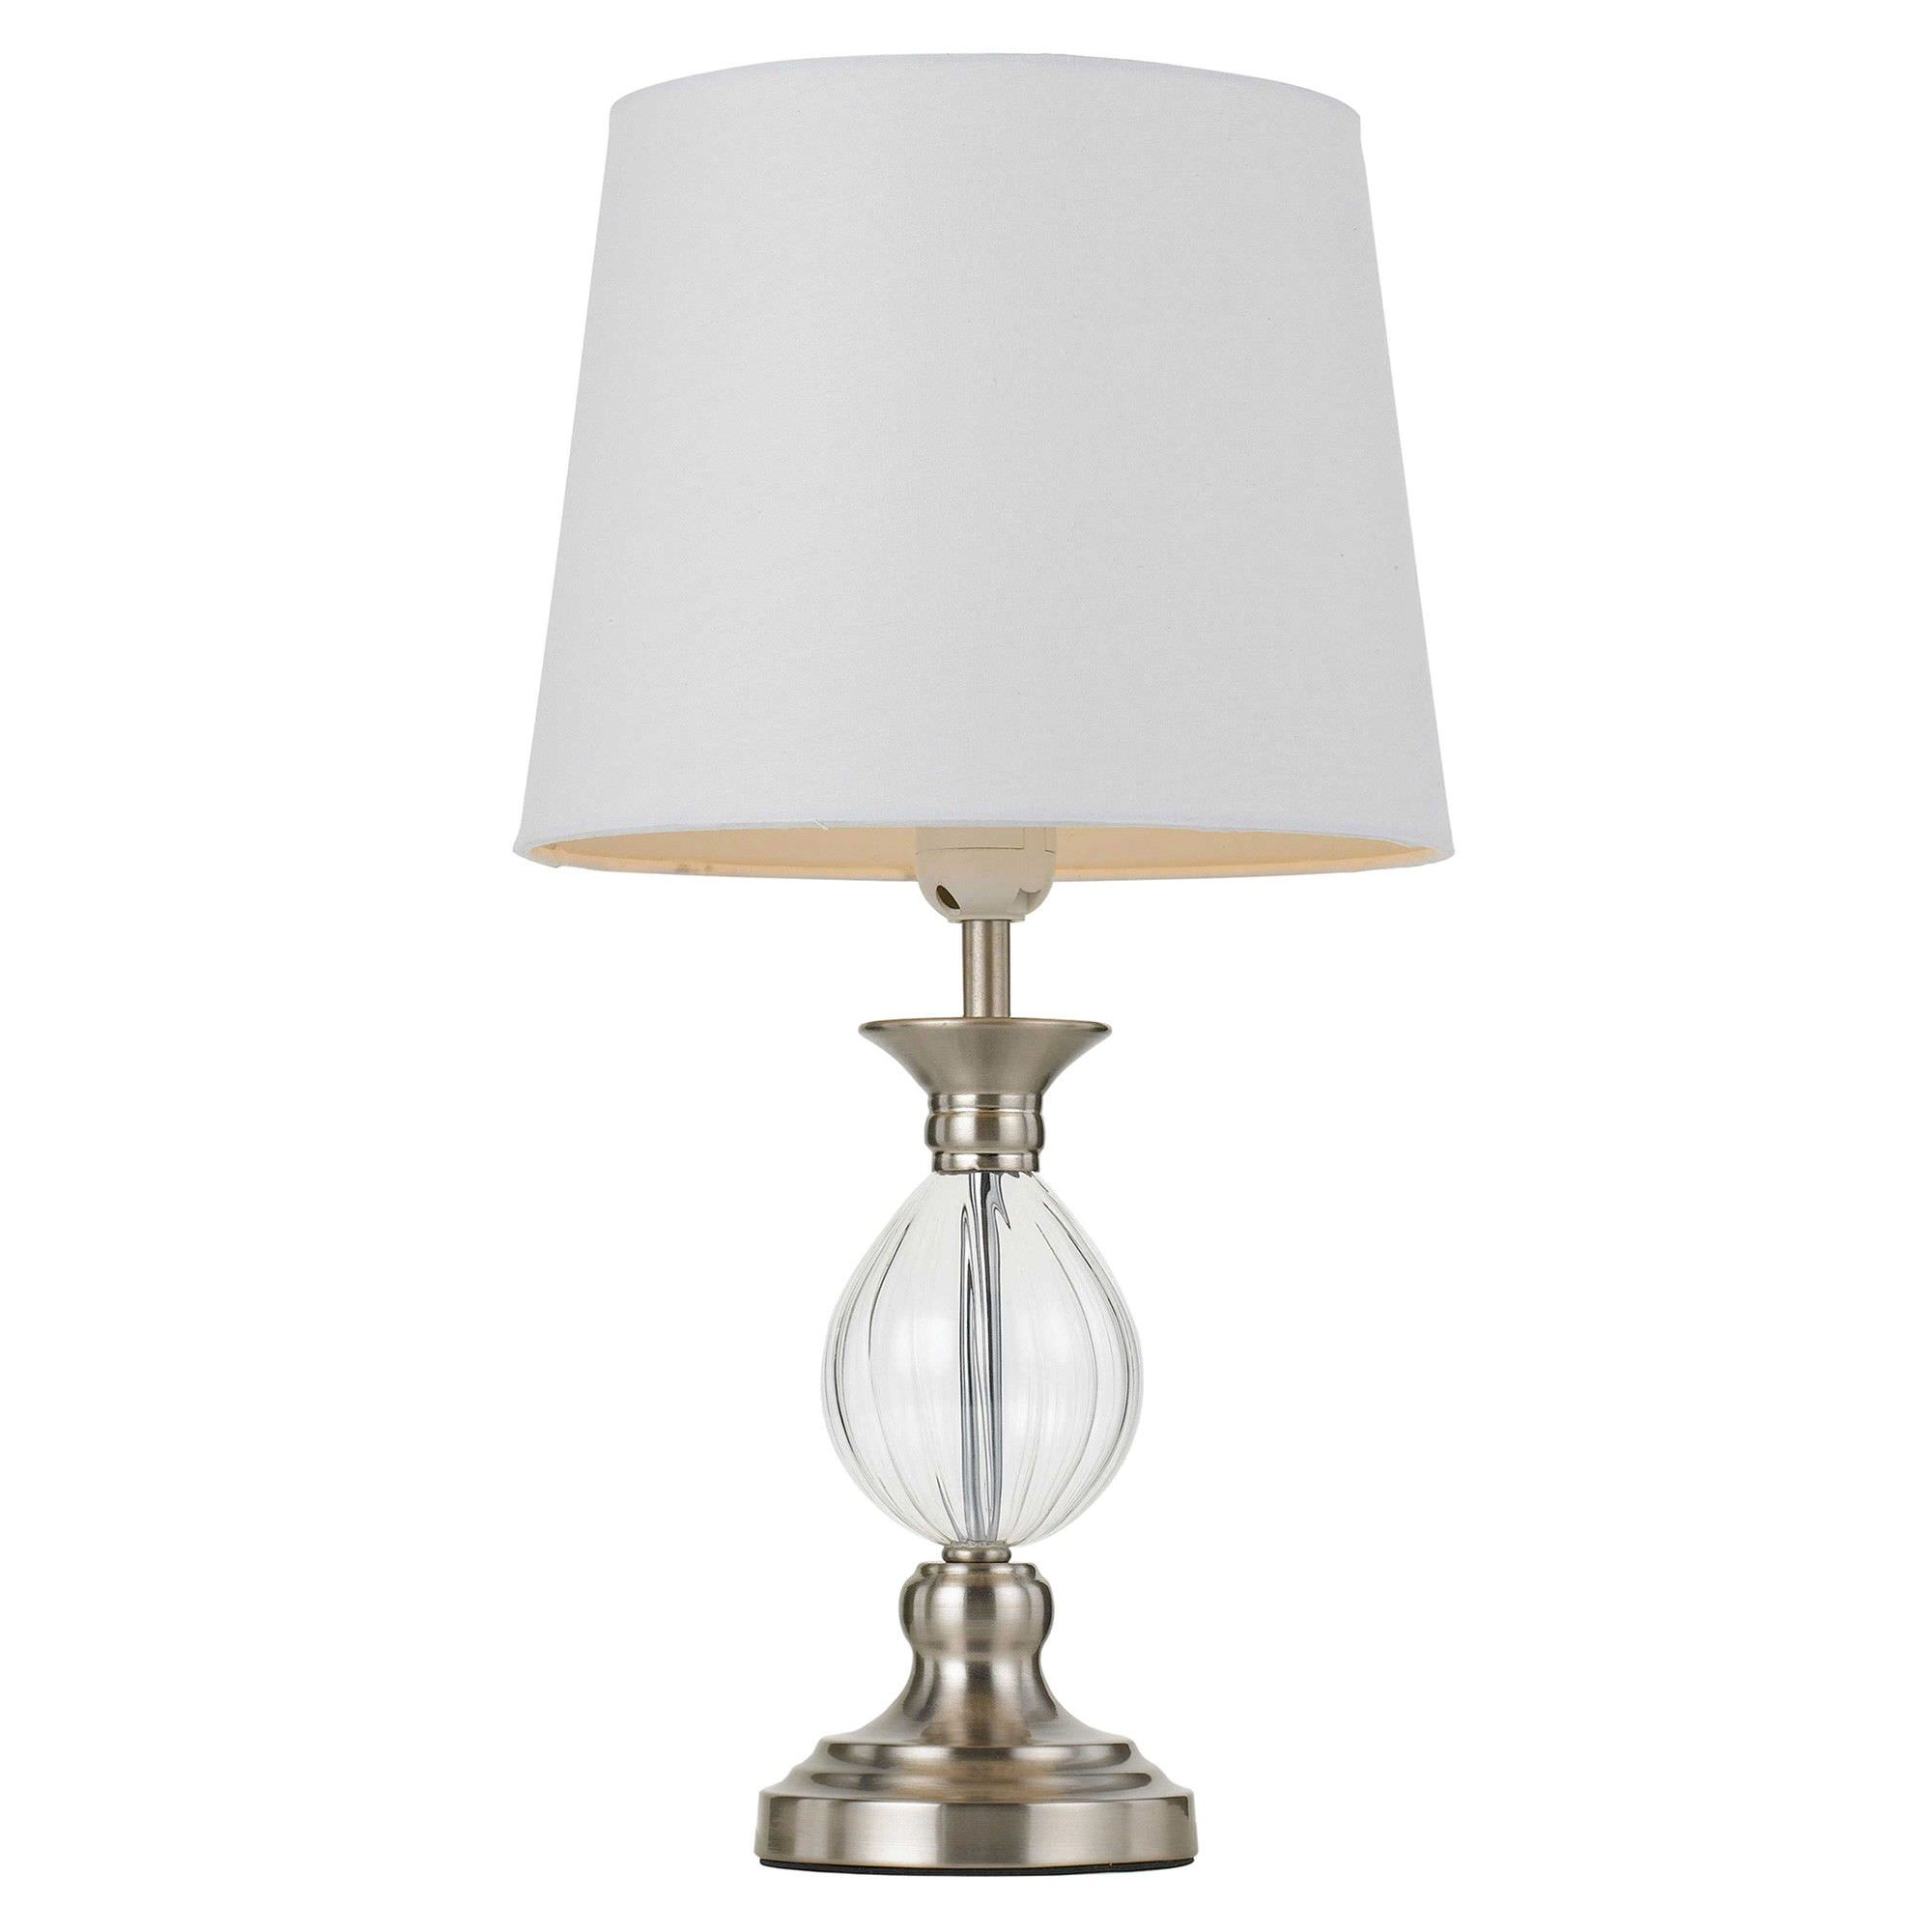 Crest Metal & Glass Base Table Lamp, Nickel